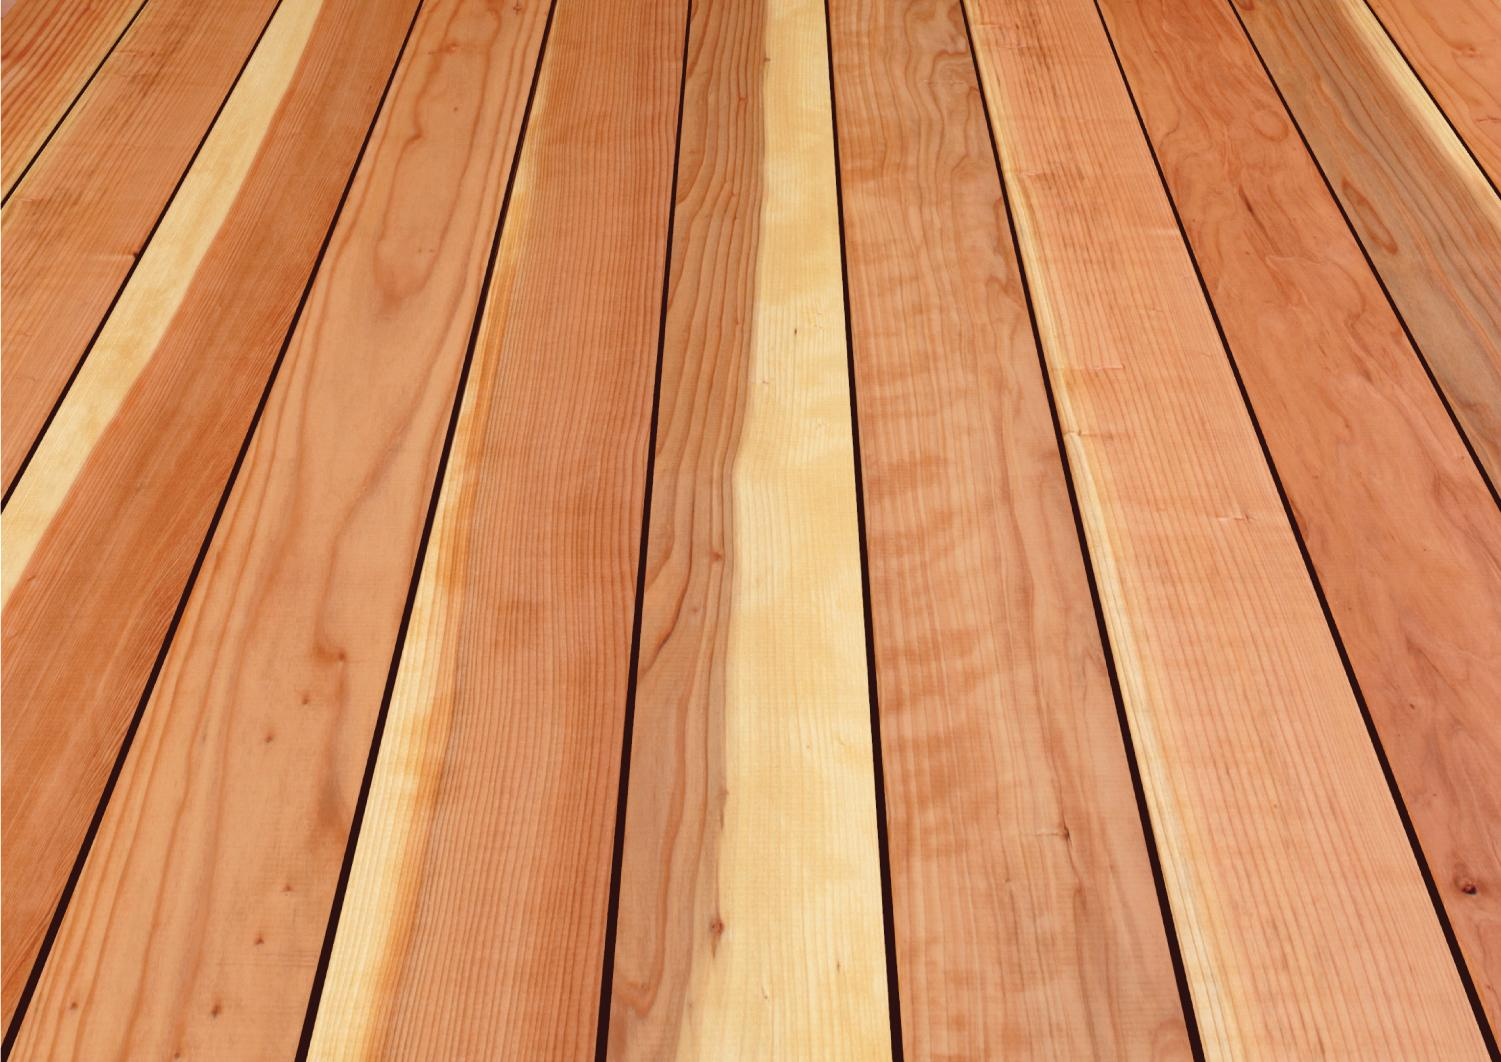 California Redwood Co. Heritage Collection Decking